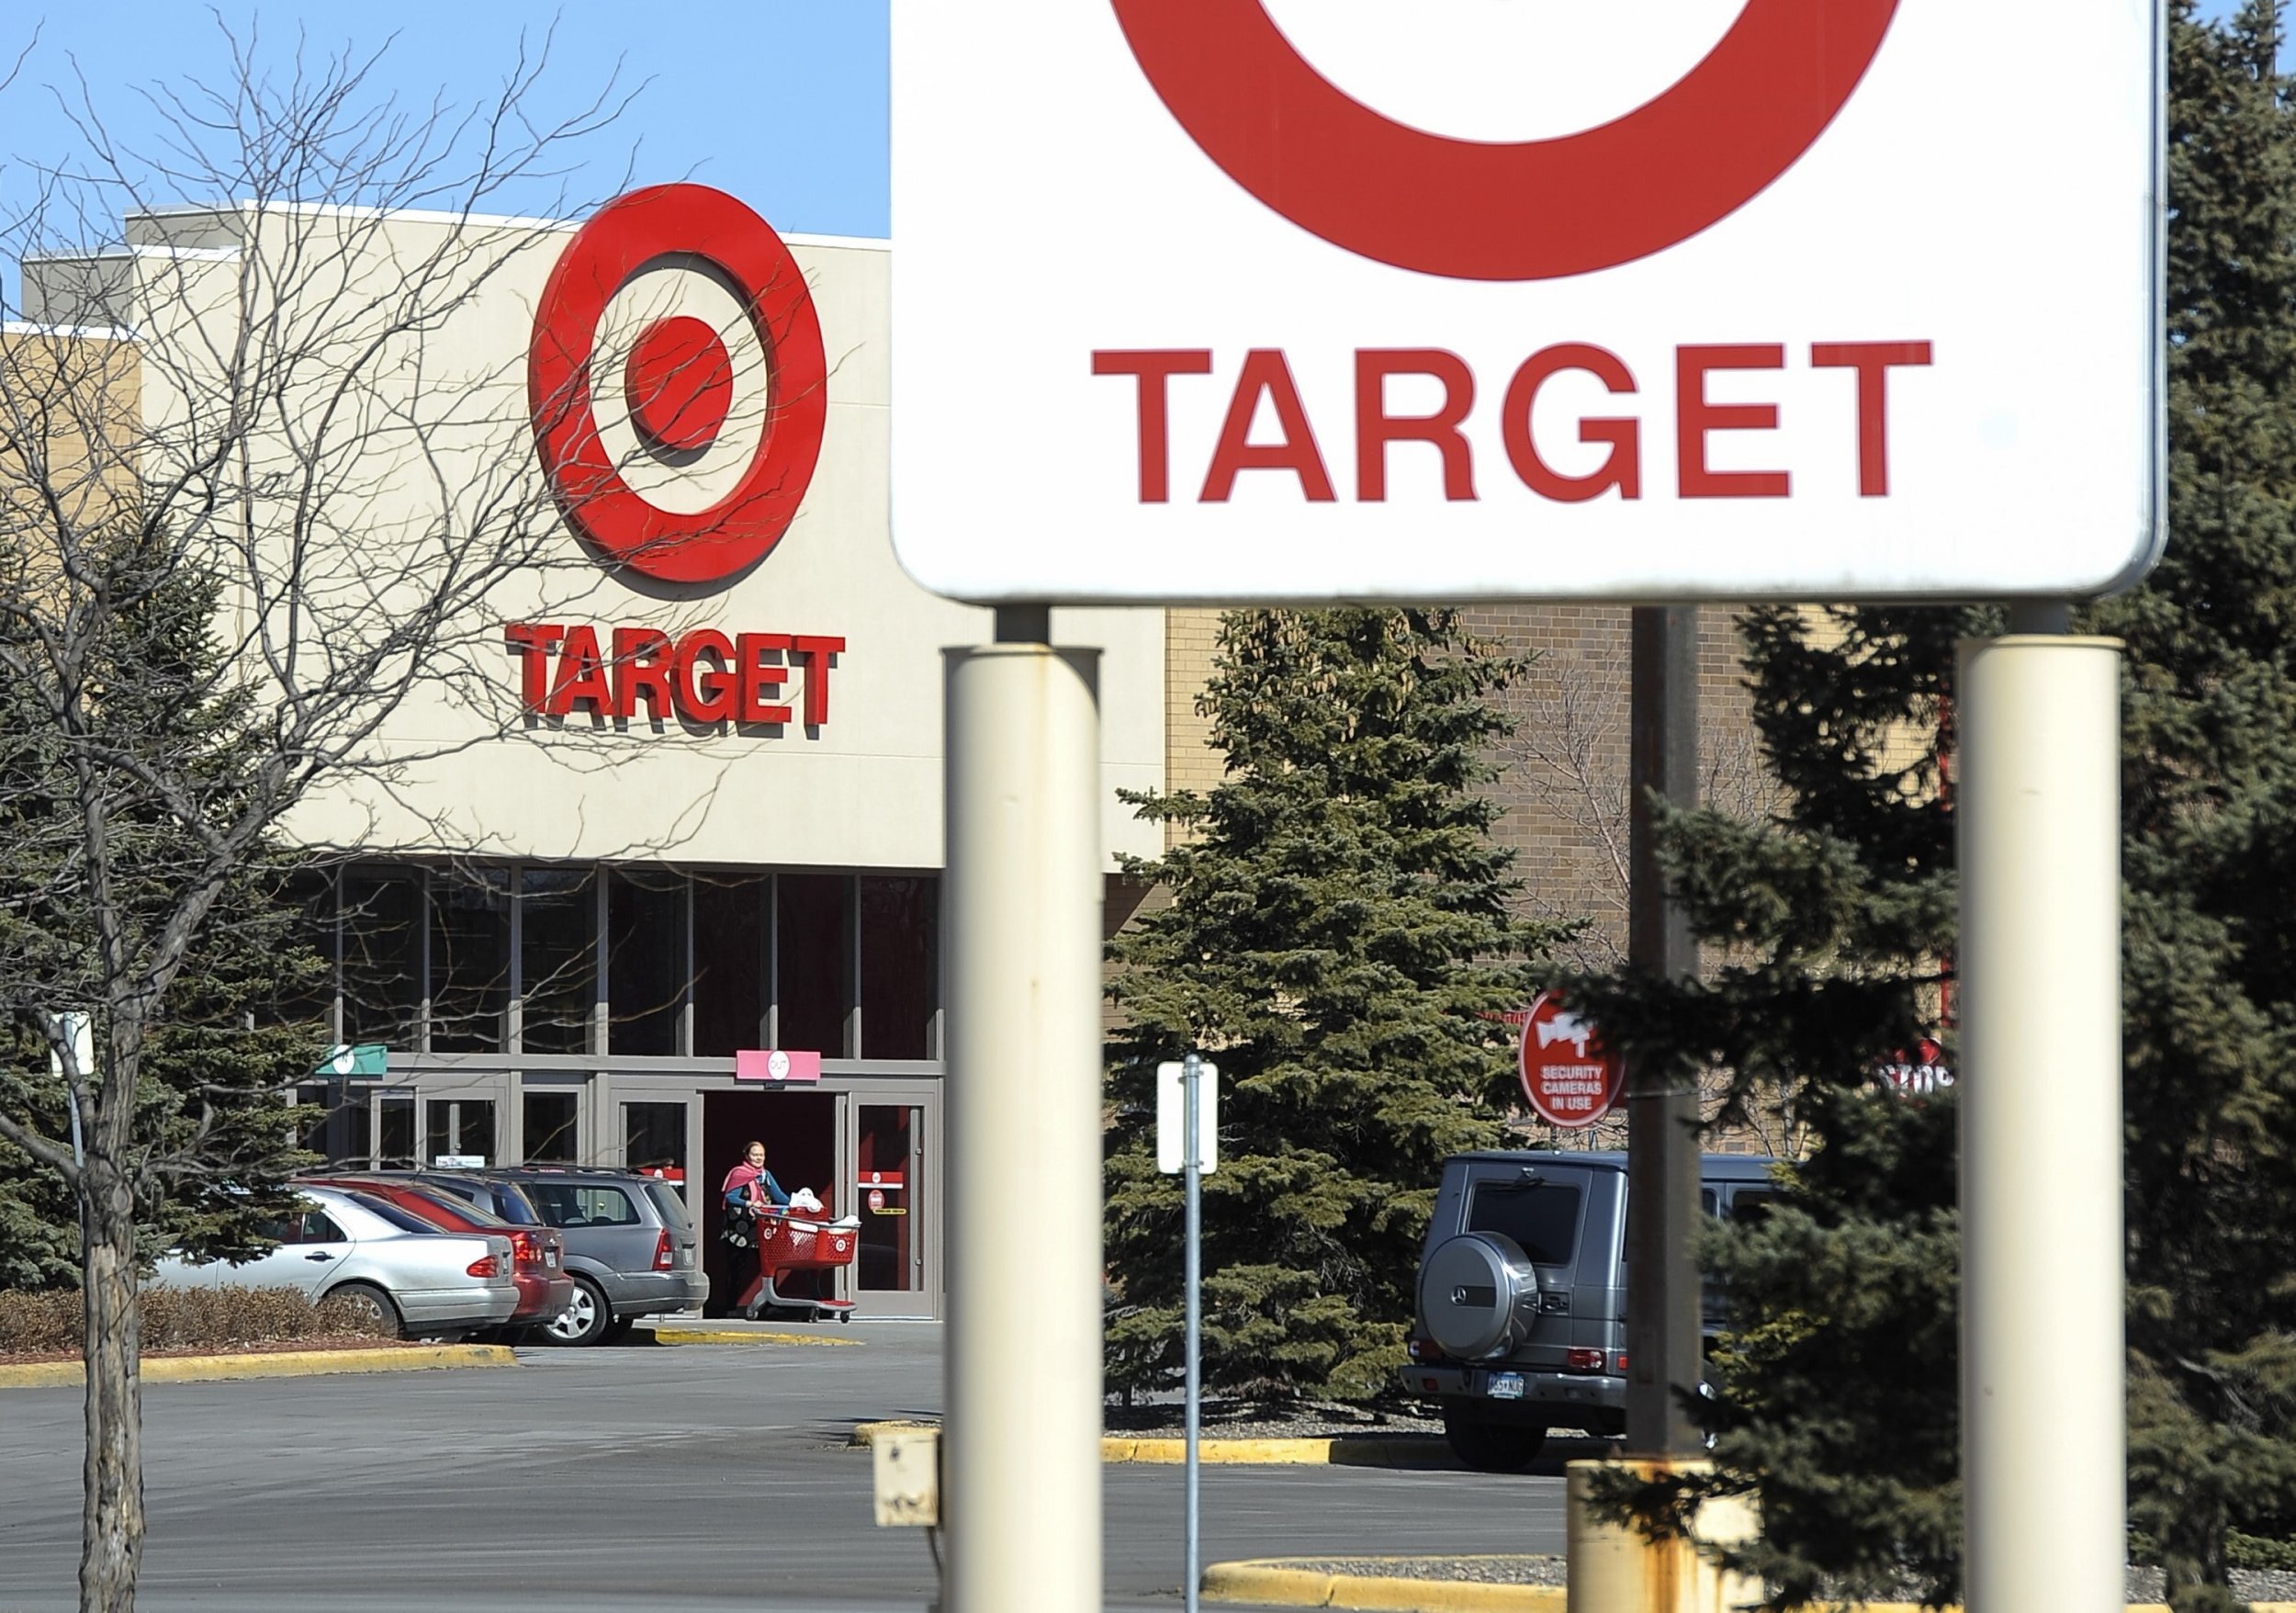 Target To Remove Gender Based Signs